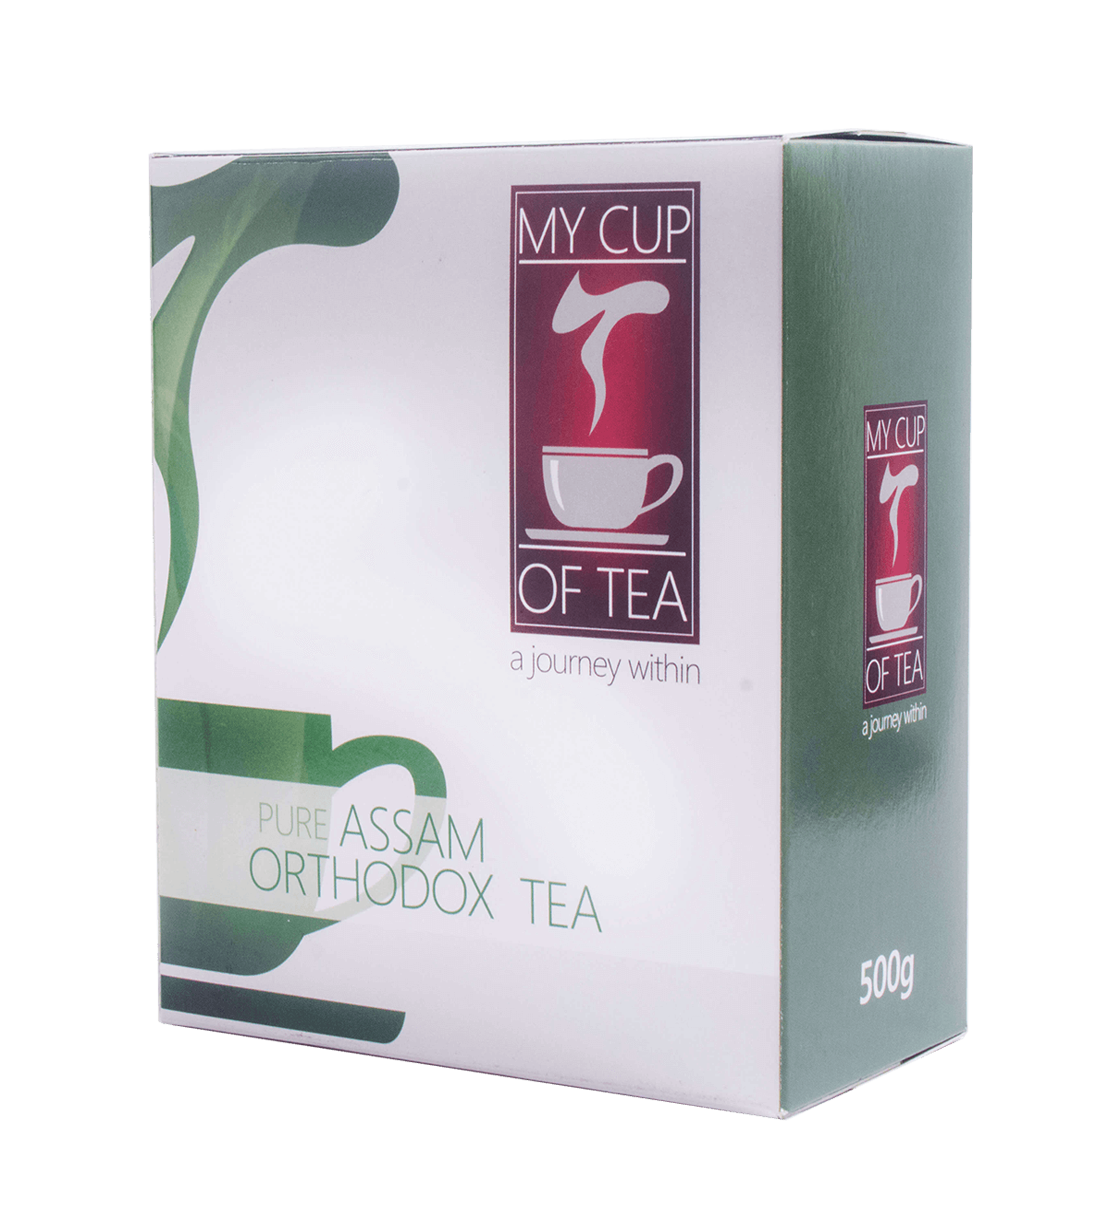 Pure Assam Orthodox Tea